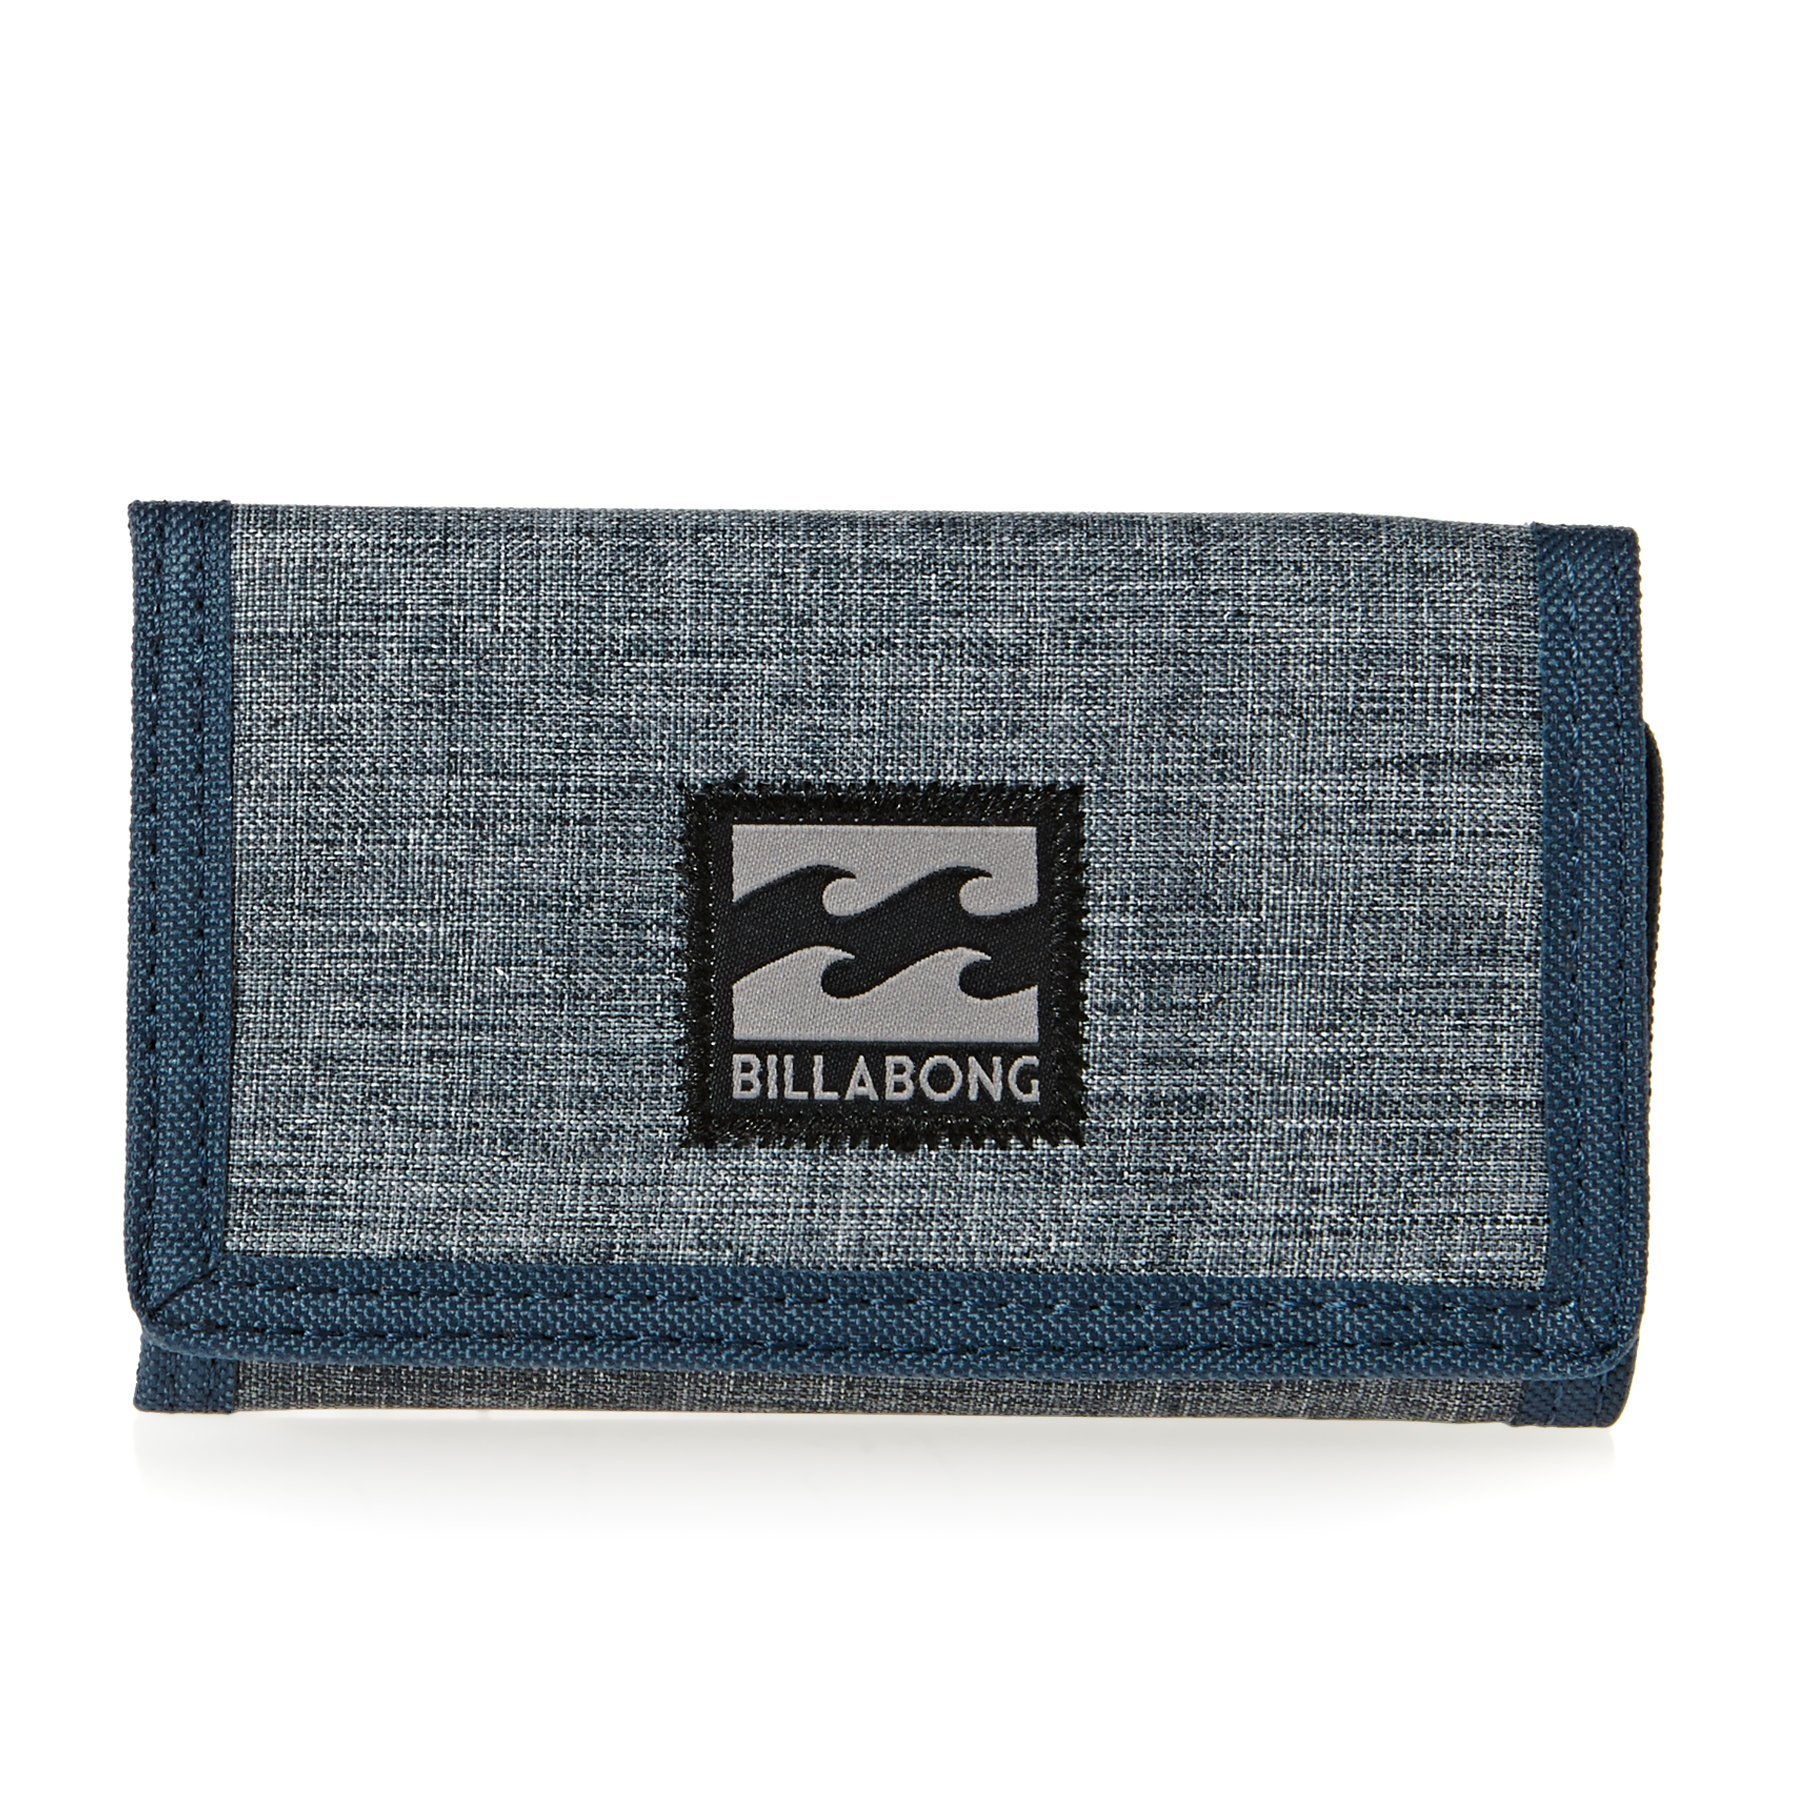 Billabong Atom Wallet One Size Dark Slate Heather by Billabong (Image #8)